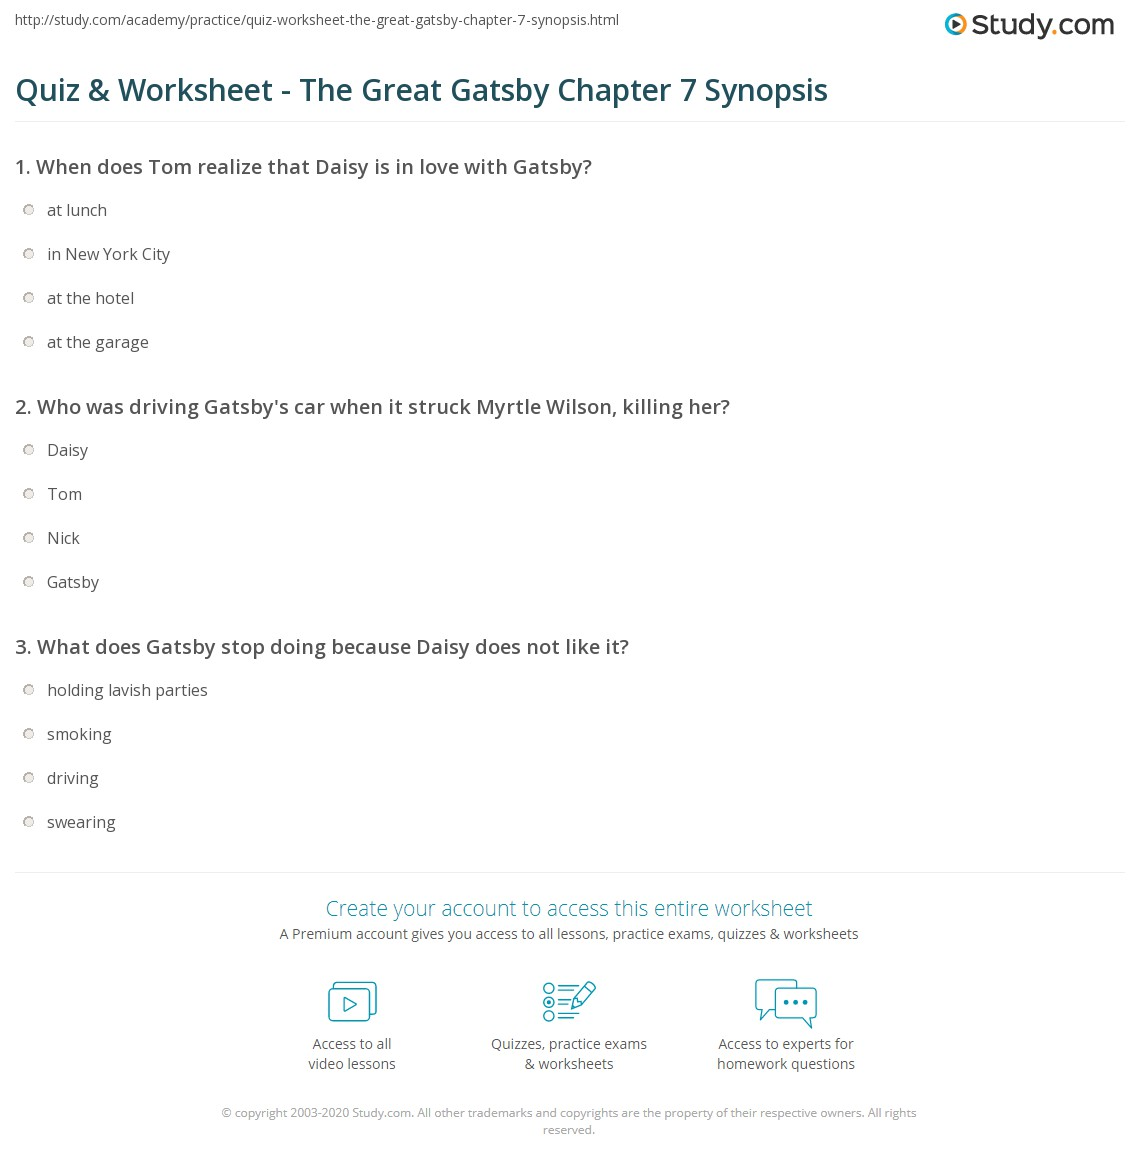 quiz worksheet the great gatsby chapter 7 synopsis study com rh study com Guided Questions Asnwer Key Writing Guiding Questions